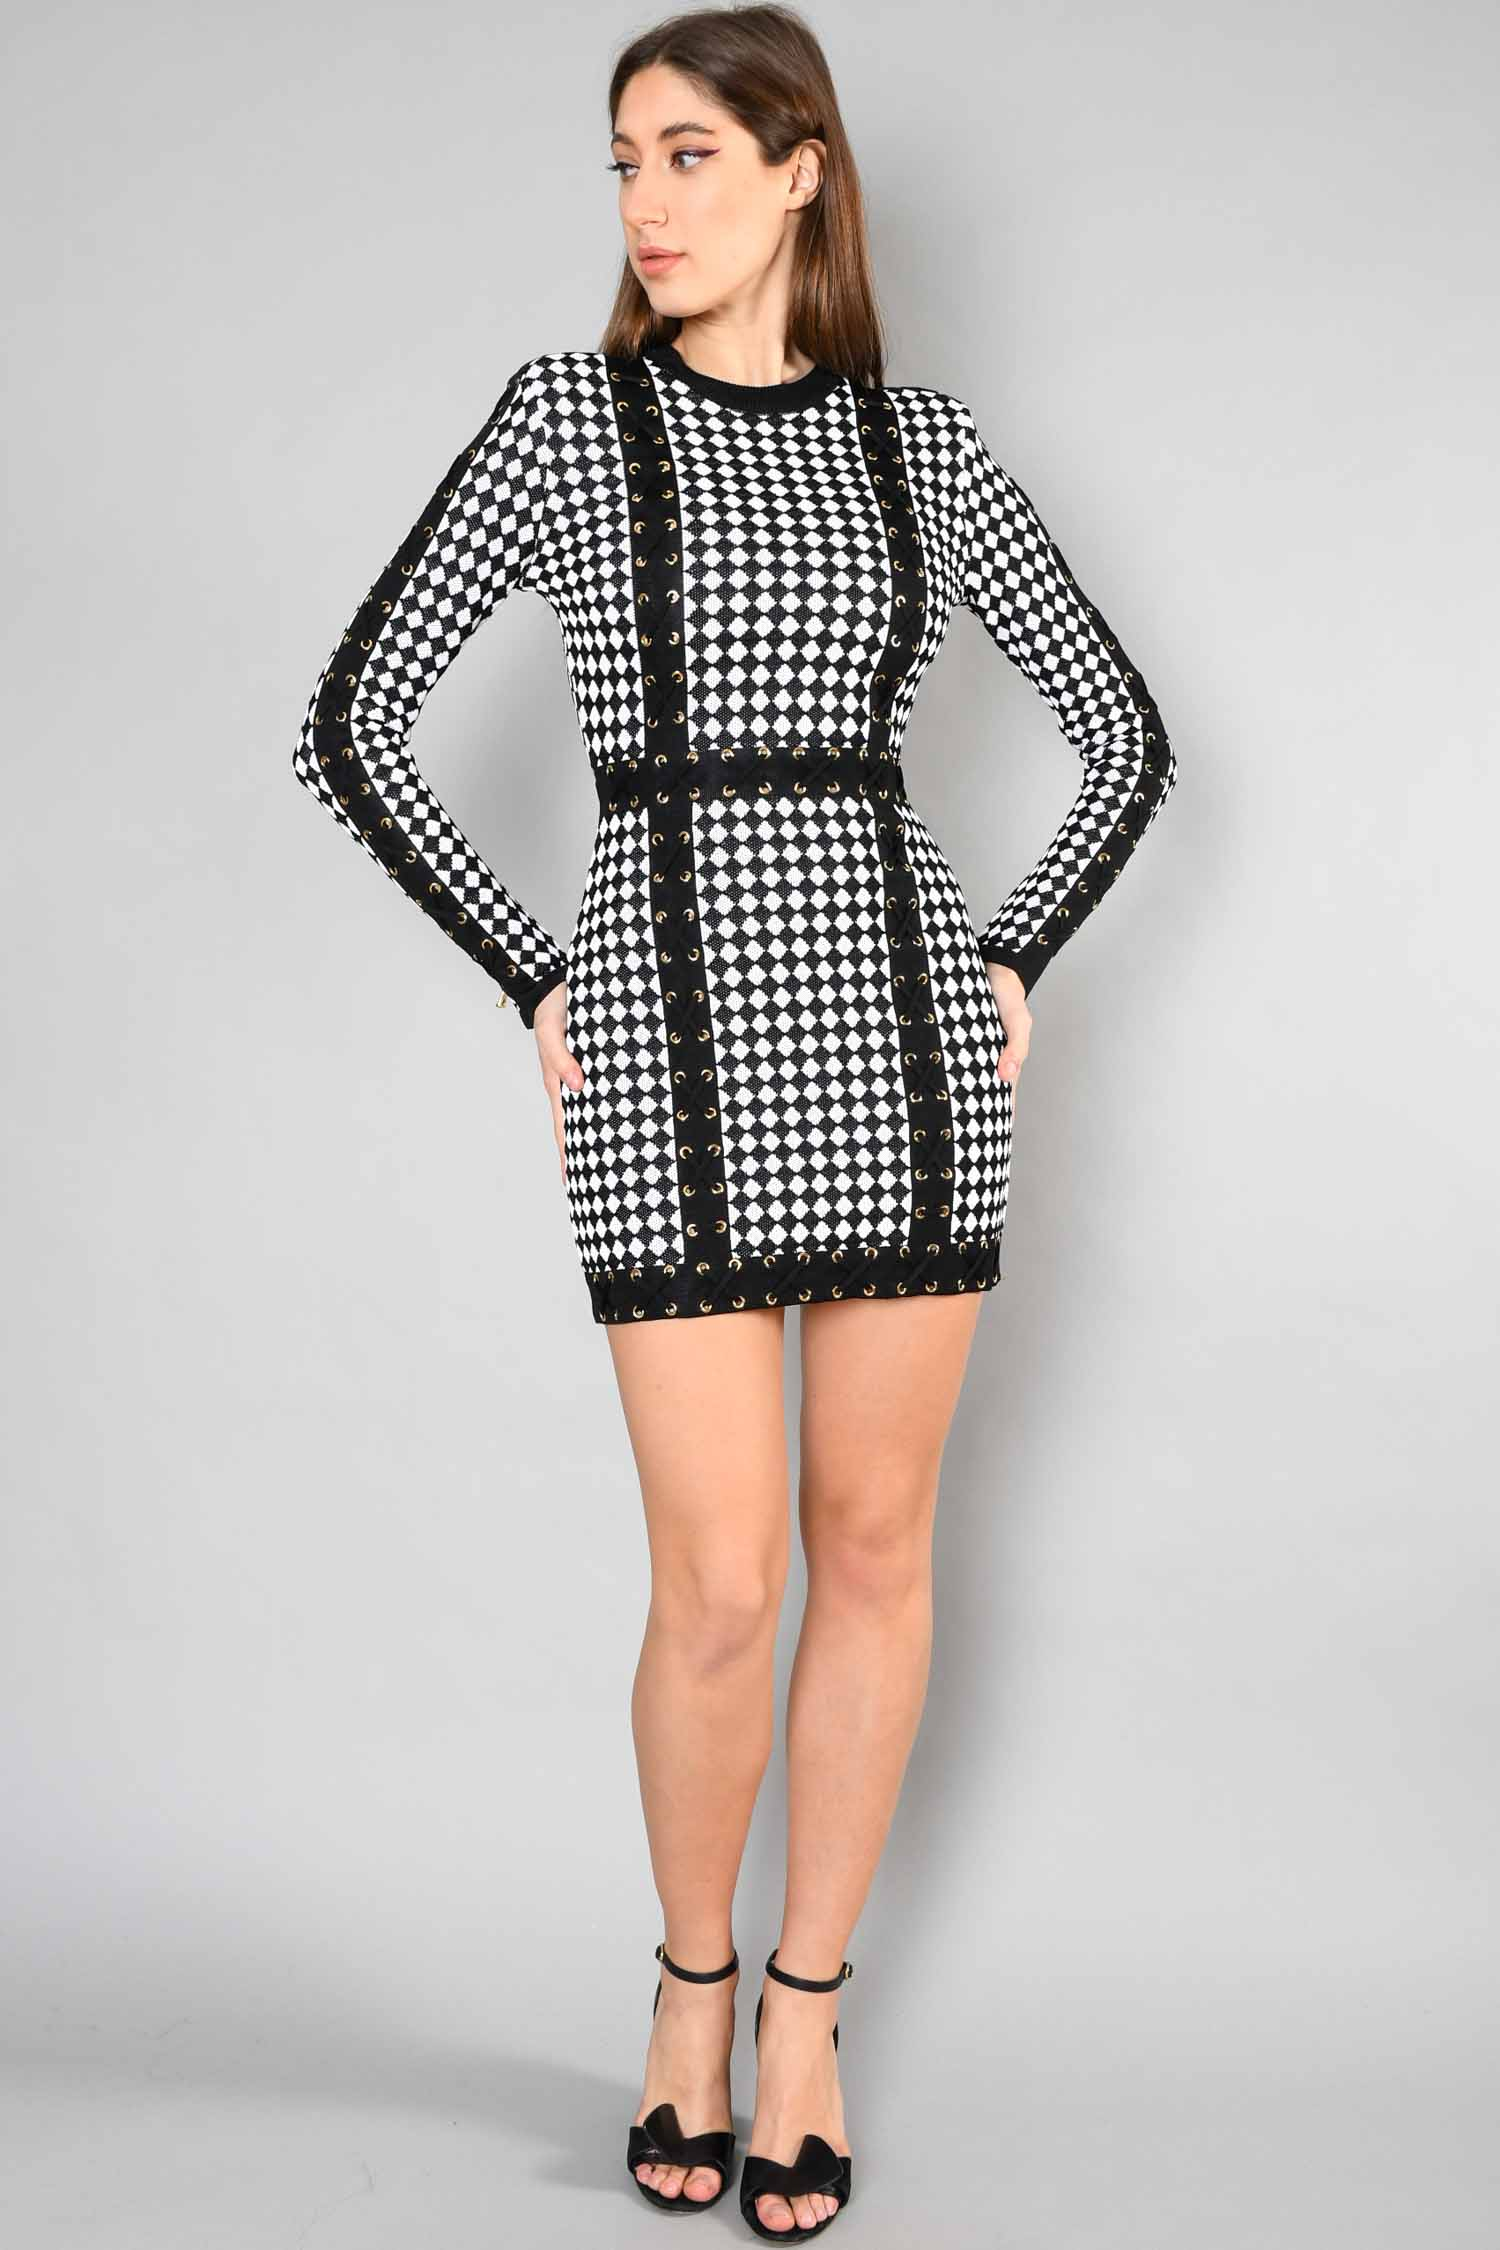 Balmain Black & White Lace-Up-Detailed Dress Size 38